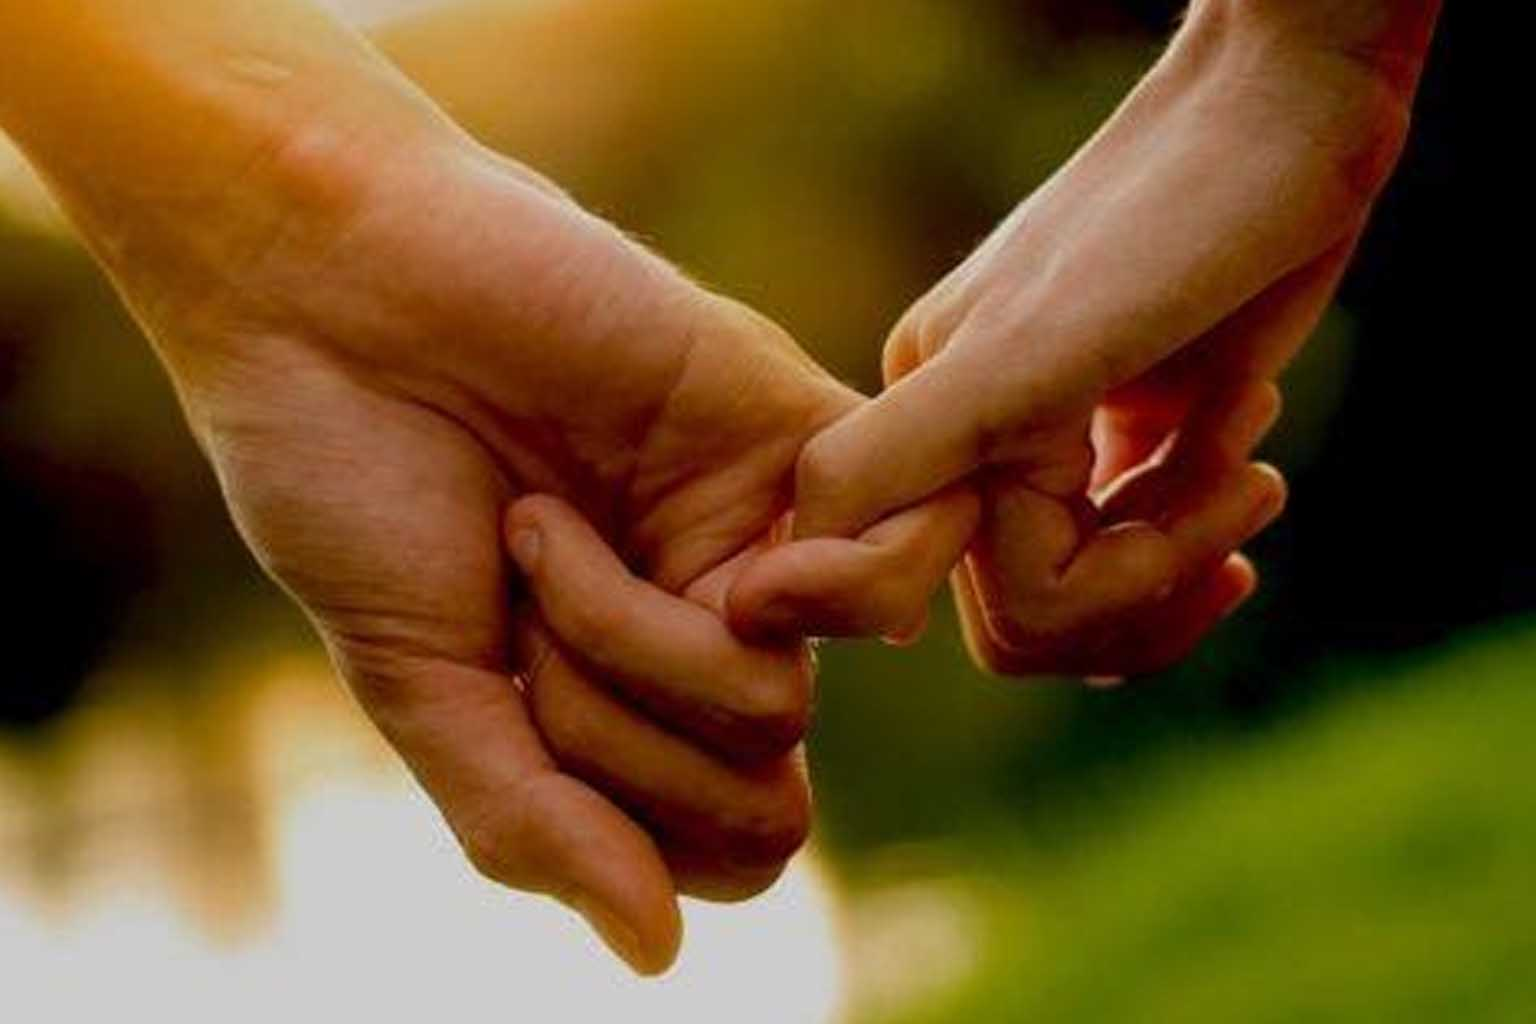 meaning of holding hands in different ways,